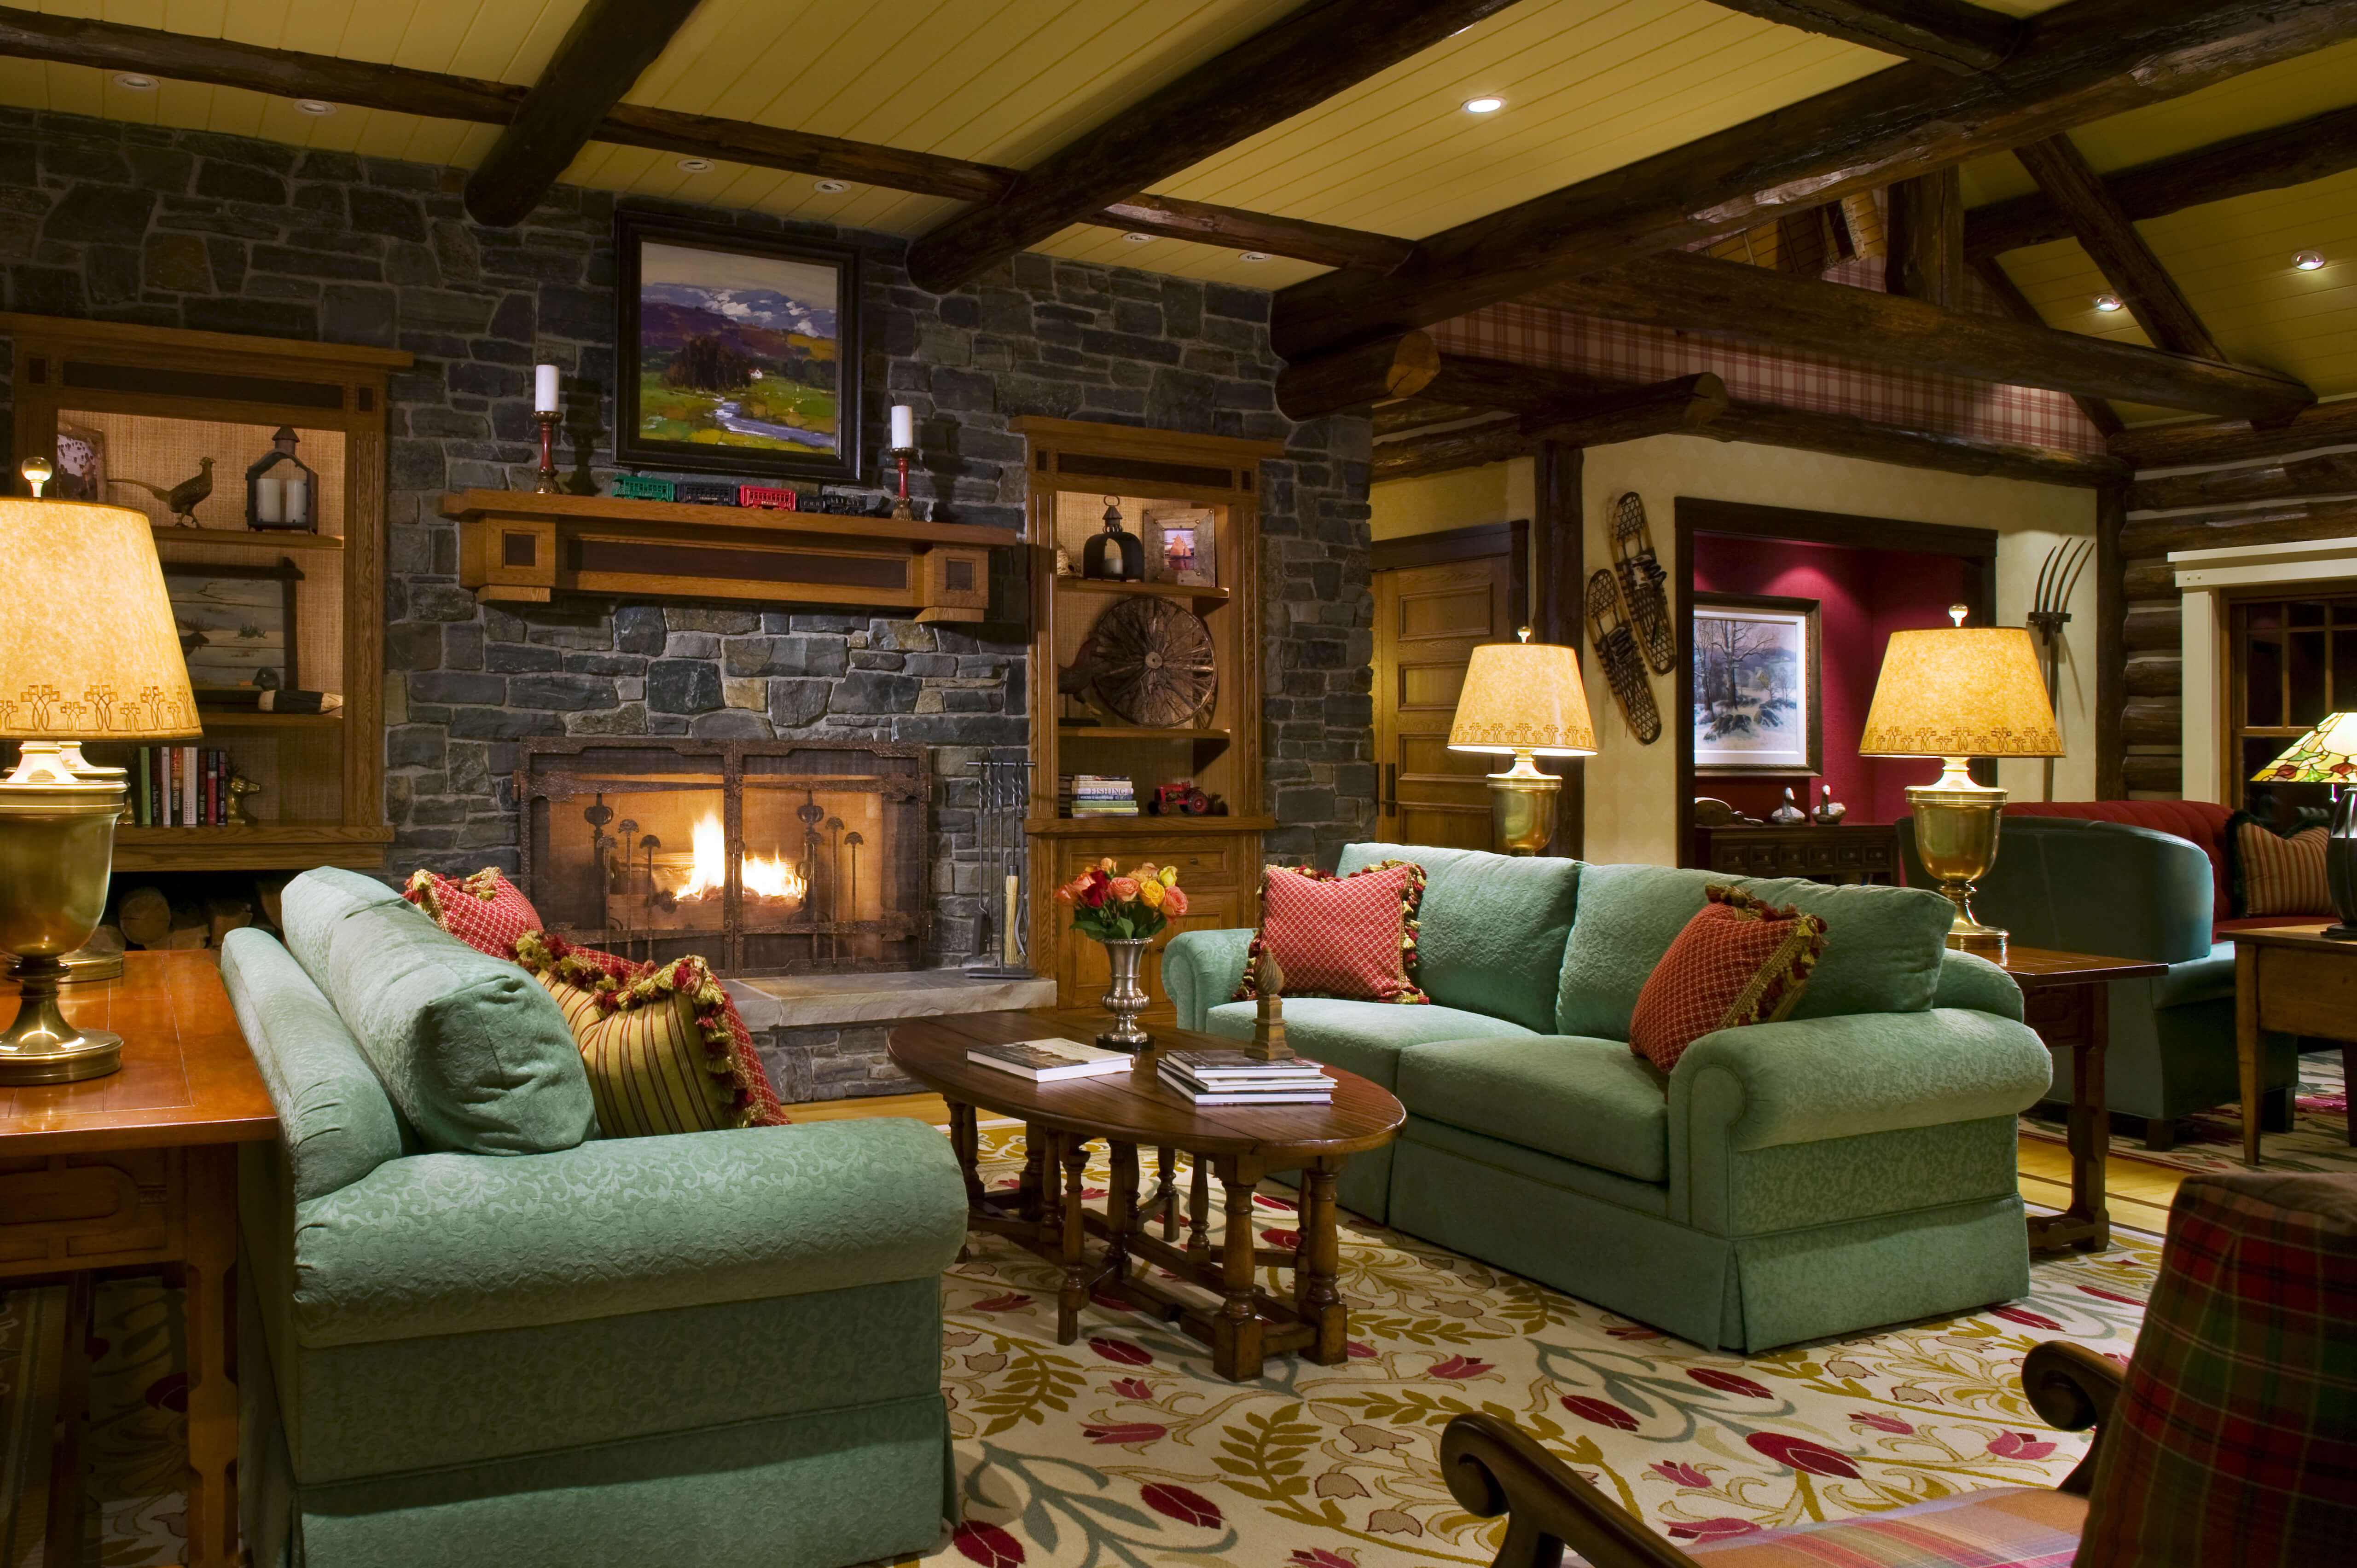 Rustic living rooms with turquoise sofas with red pillows, dark granite fireplace and sloped ceiling with light spots. A multi floral carpet with an oval wooden table coffee.